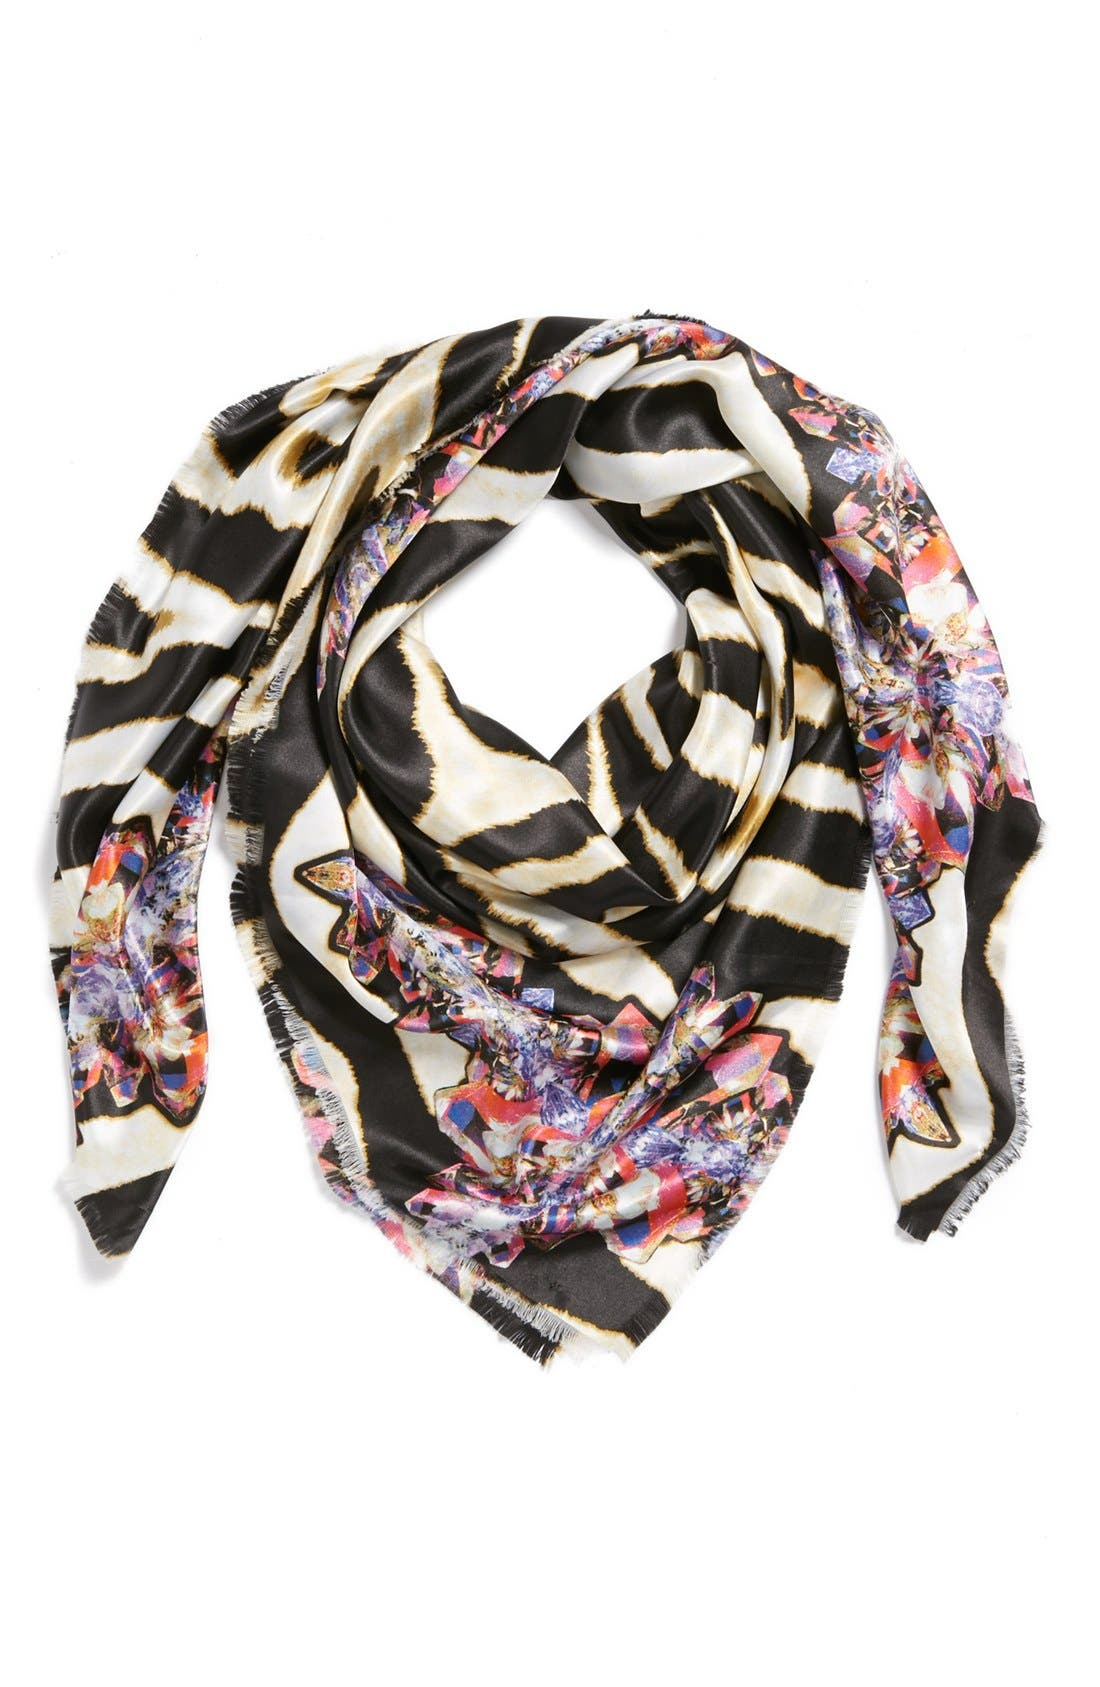 Main Image - Accessory Street Floral Scarf